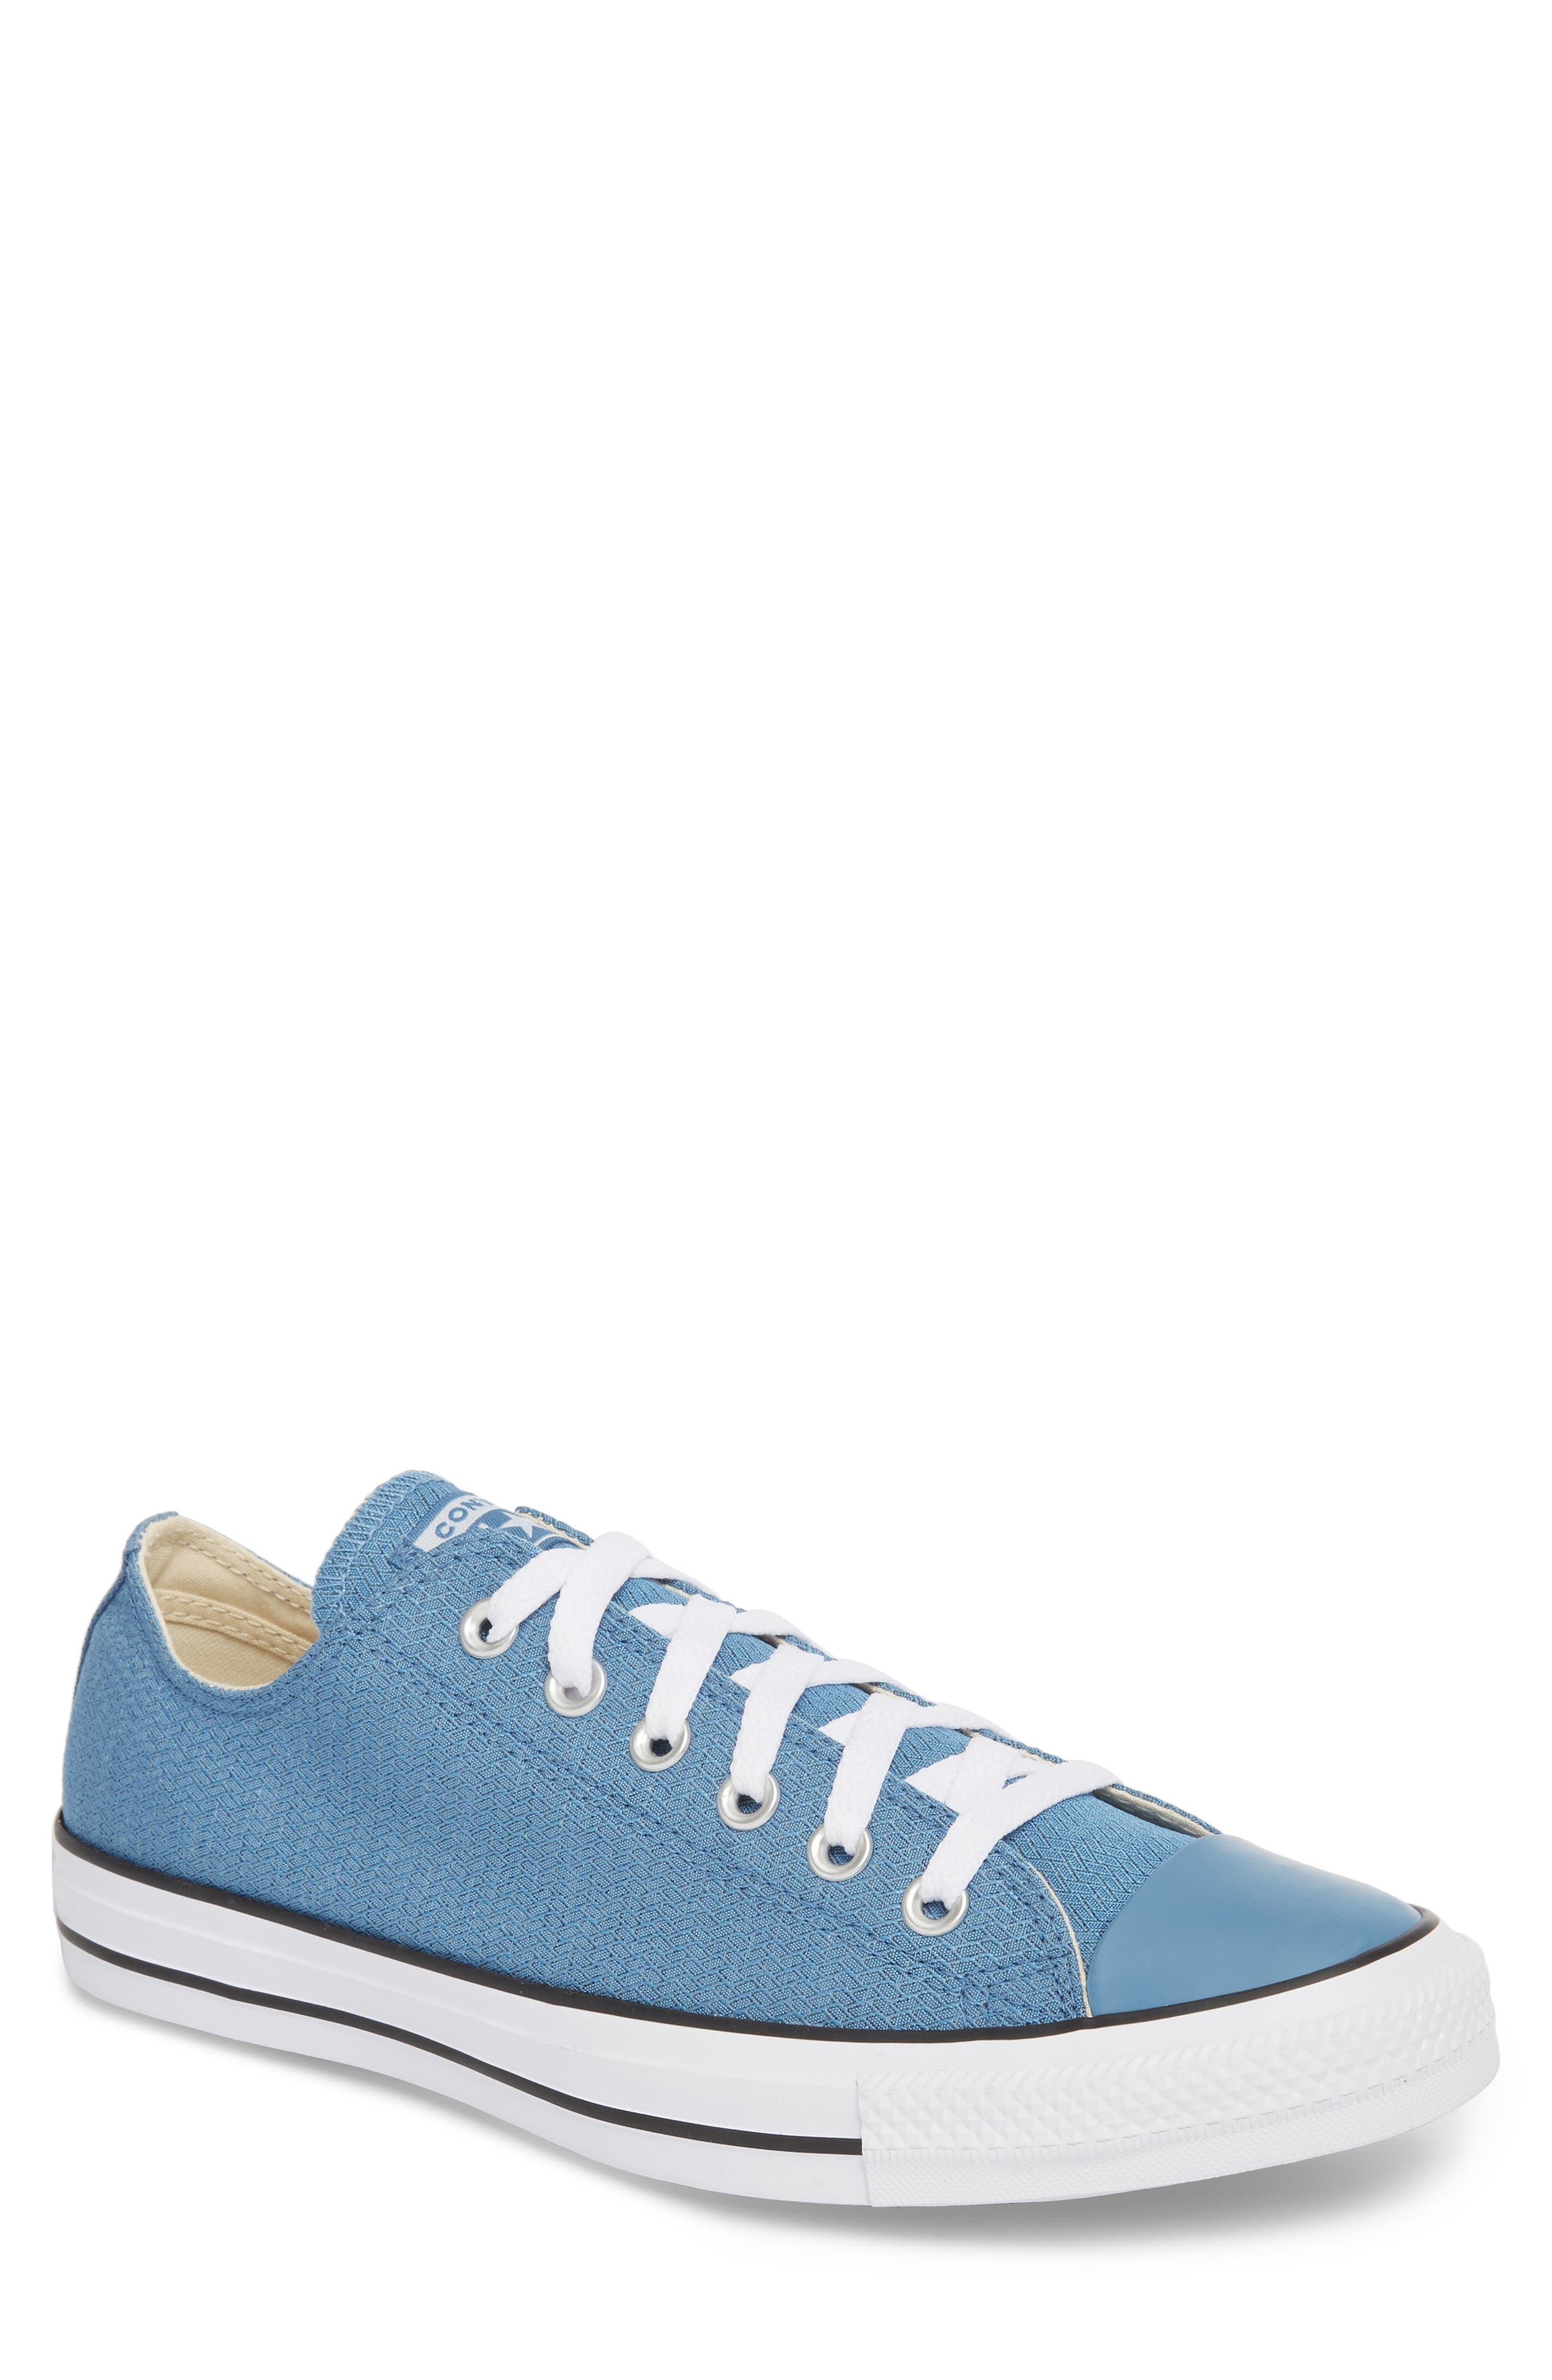 All Star<sup>®</sup> Ripstop Low Top Sneaker,                             Main thumbnail 2, color,